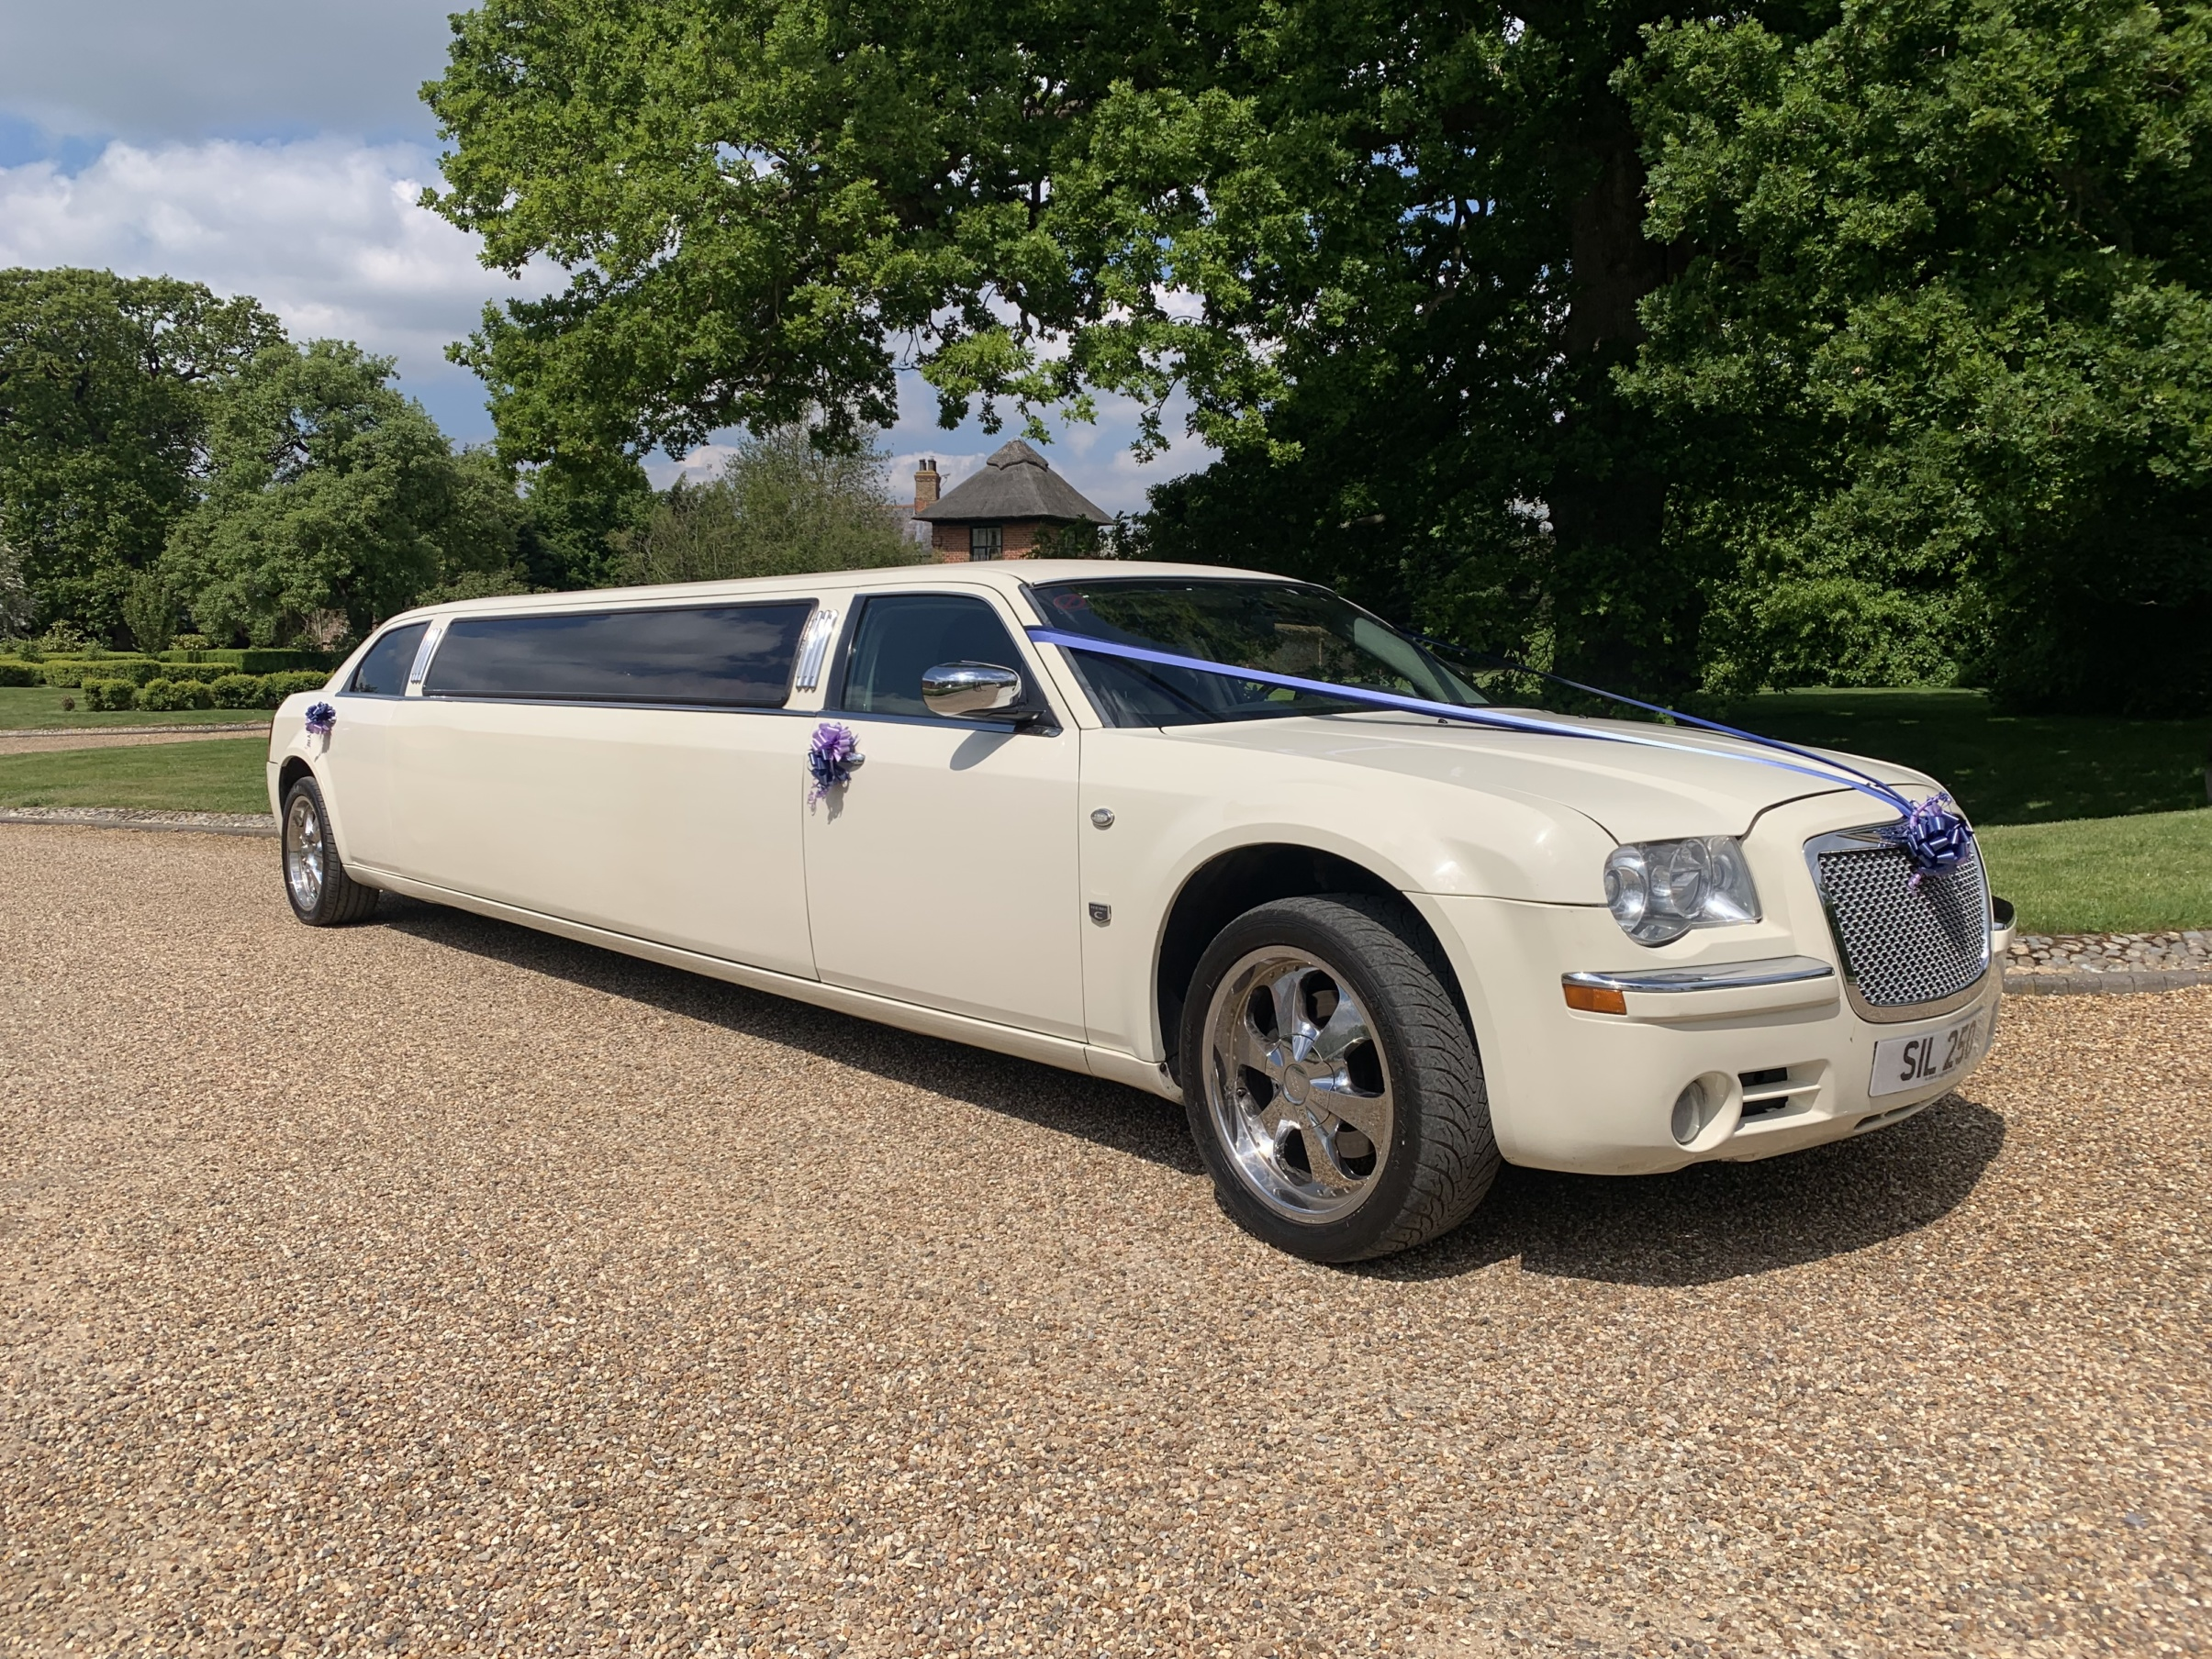 The Best Wedding Cars to Hire Norwich